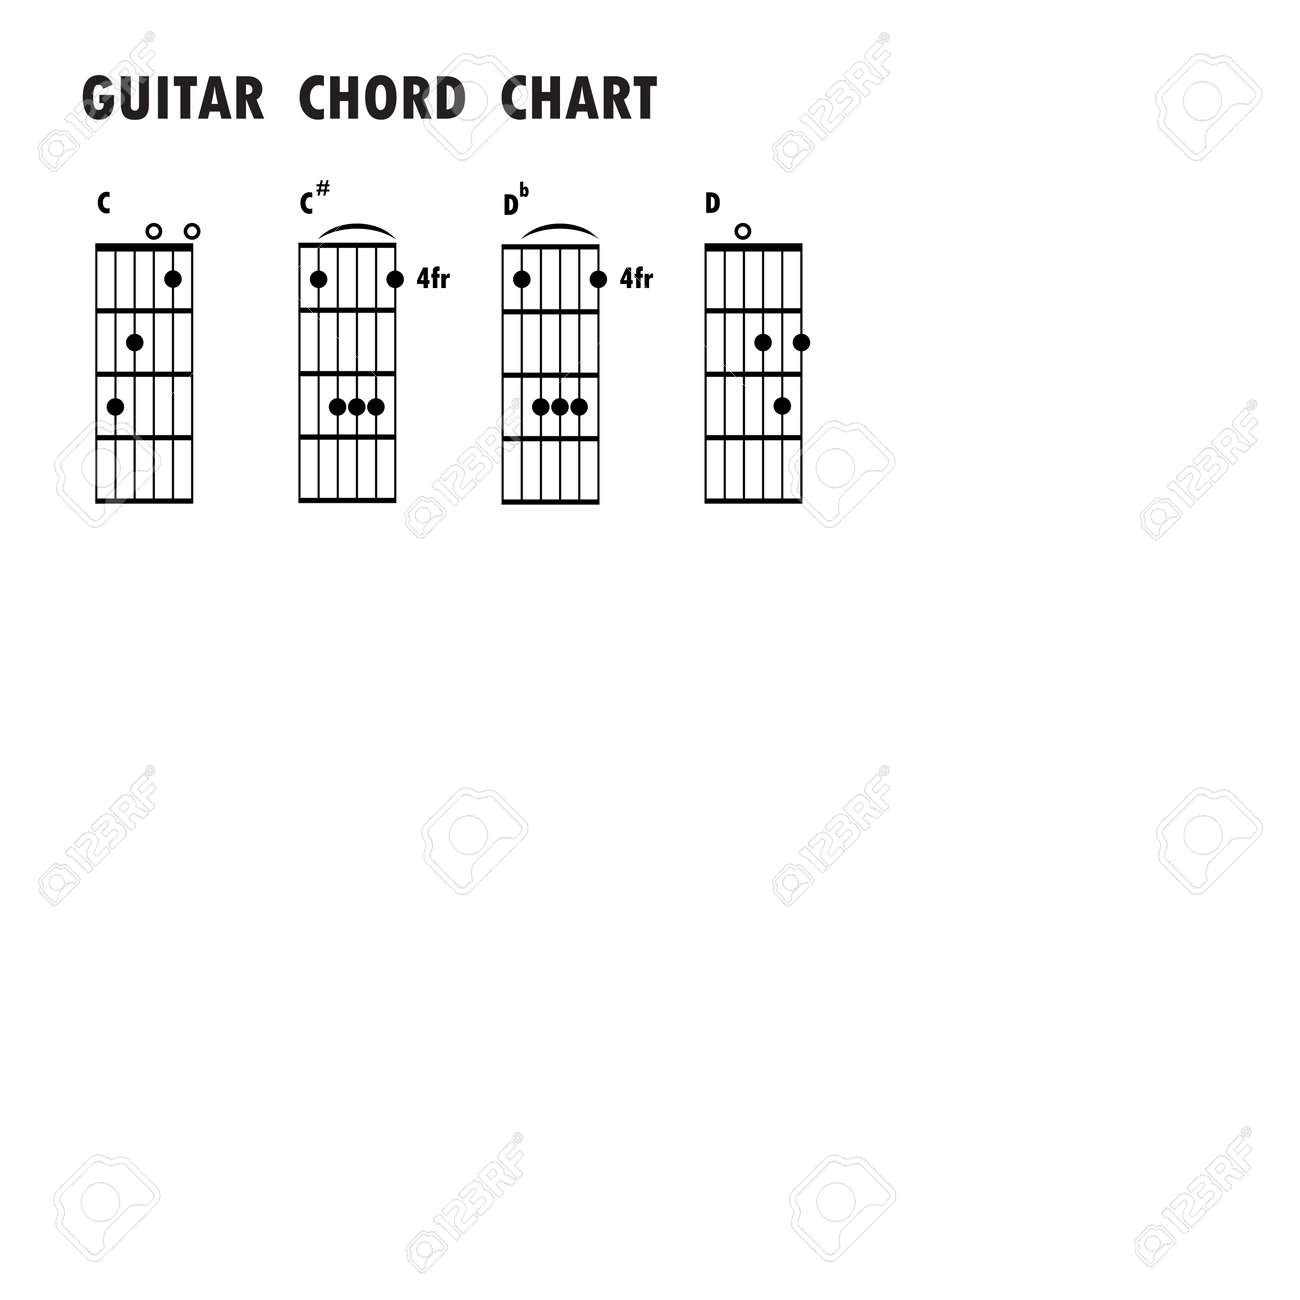 Sinhala guitar chords gallery guitar chords examples your guardian angel chords guitar images guitar chords examples guitar chords notes chart gallery guitar chords hexwebz Choice Image